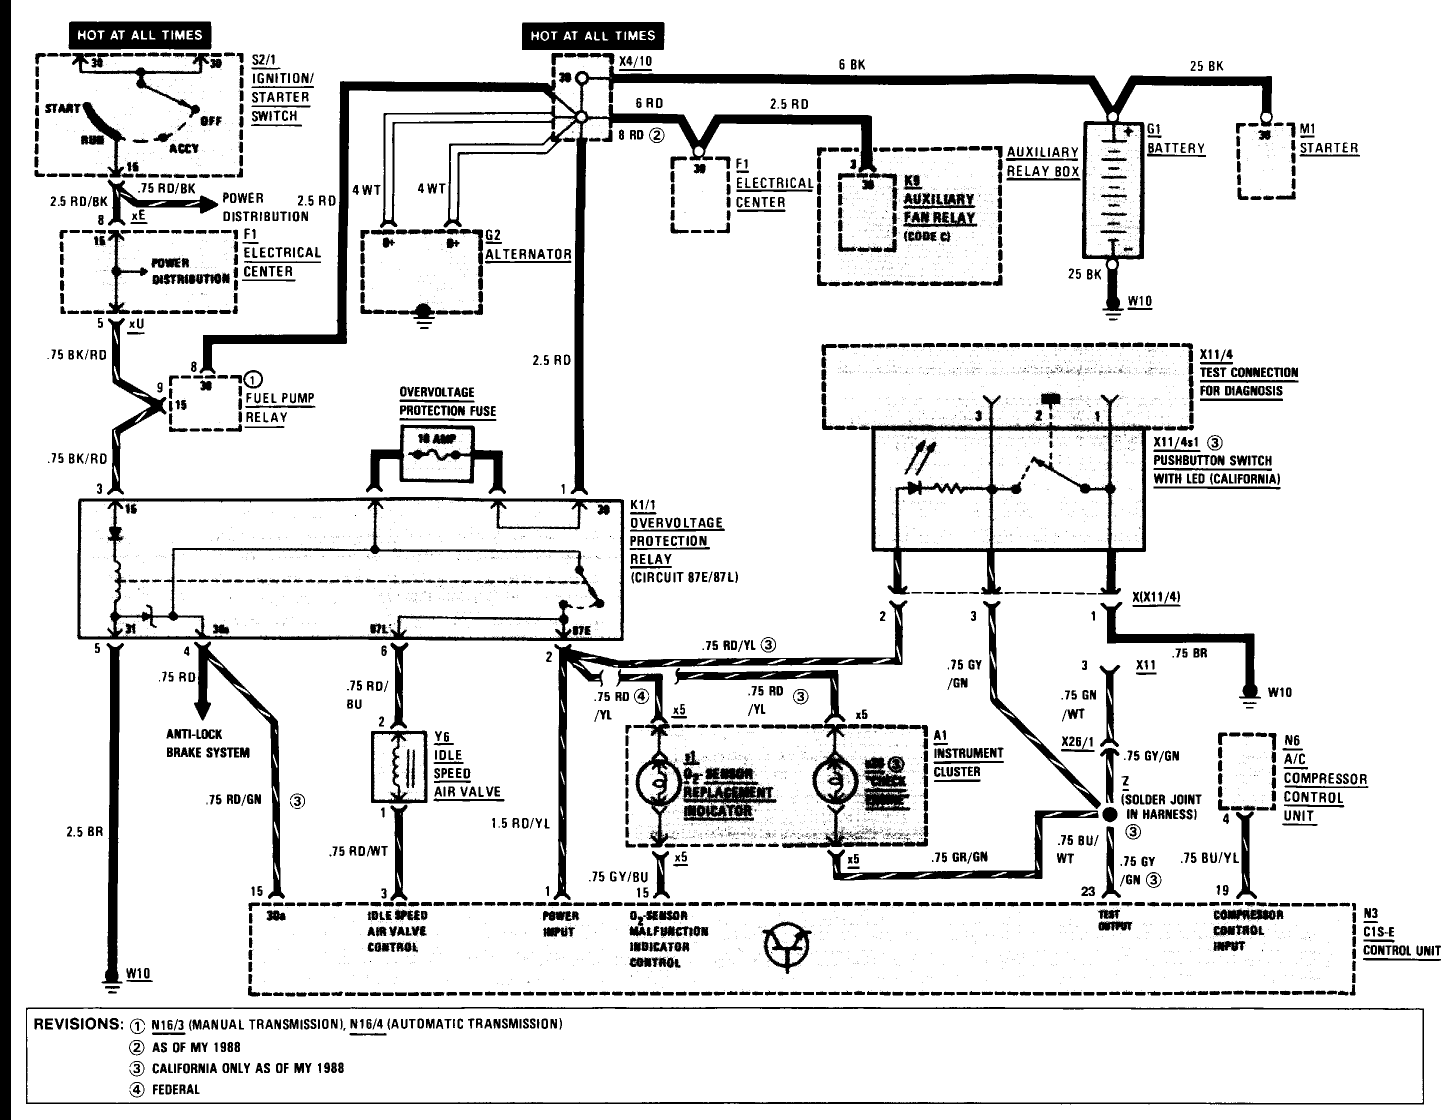 W201 Ac Wiring Diagram And Schematics Abs Mercedes Trusted Diagrams Source Question On 1987 190e Cold Start Low Idle Stalls If You Try To Drive